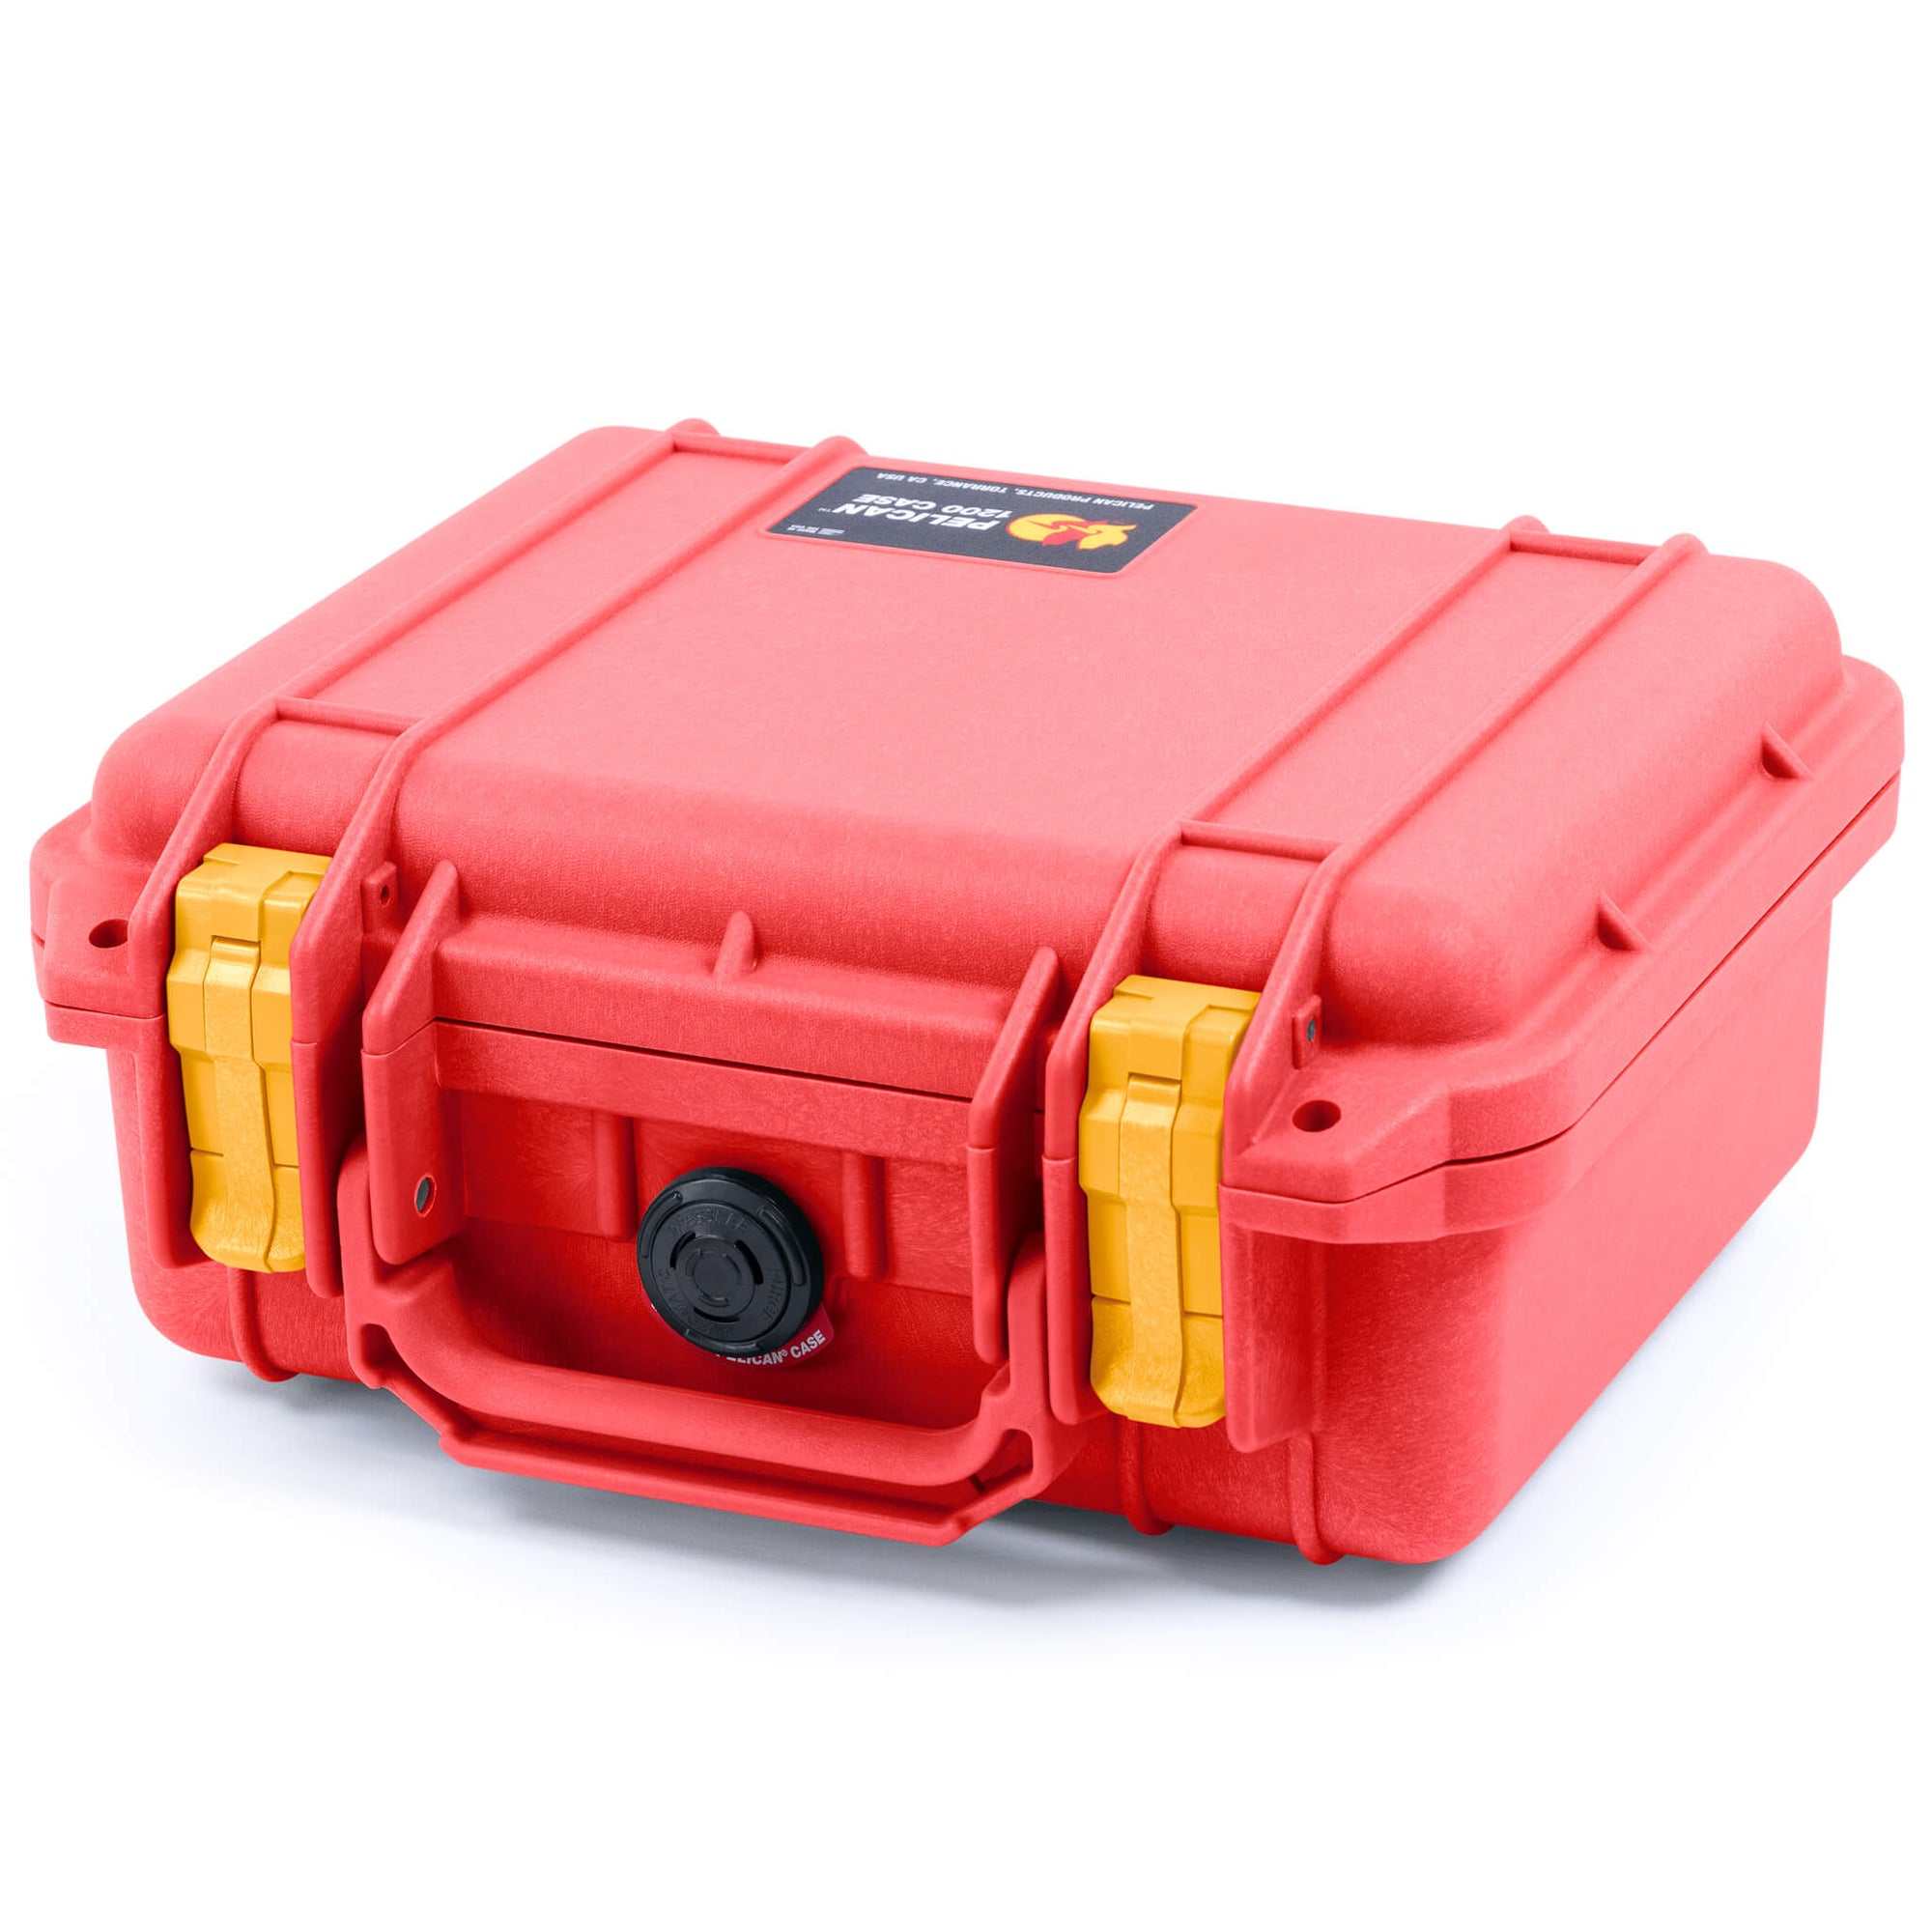 Pelican 1200 Case, Red with Yellow Handle & Latches - Pelican Color Case